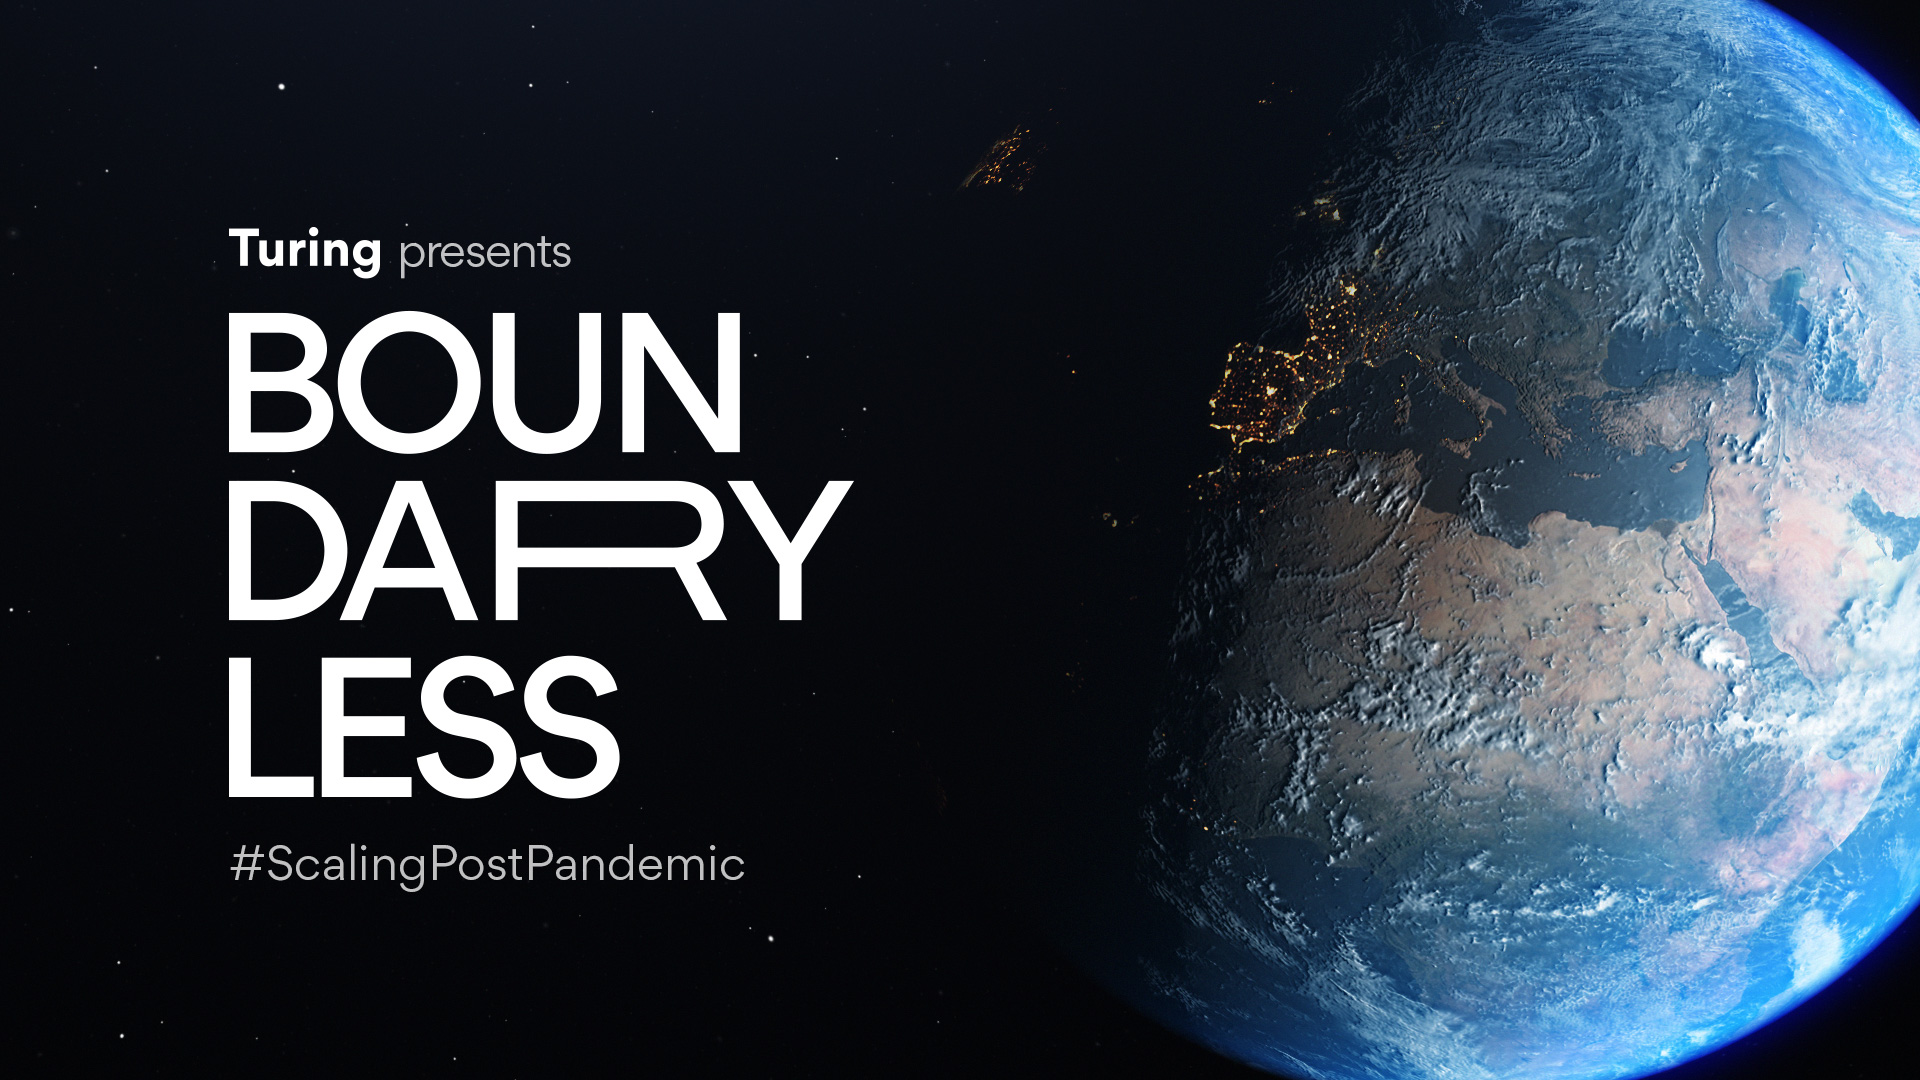 Top Takeaways from Turing's Boundaryless: #ScalingPostPandemic Event